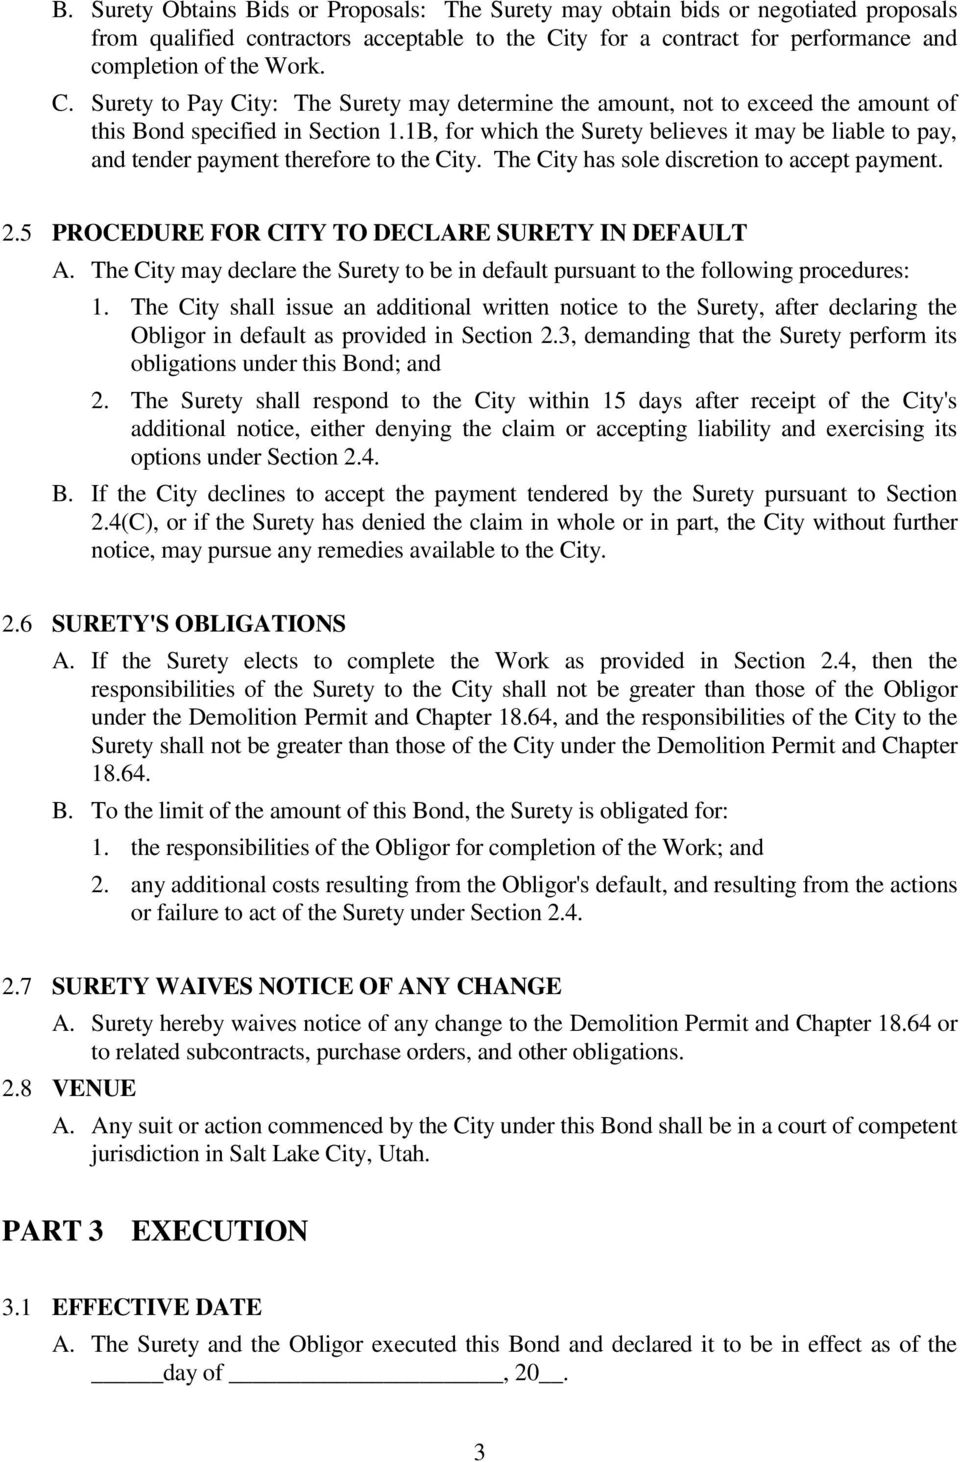 1B, for which the Surety believes it may be liable to pay, and tender payment therefore to the City. The City has sole discretion to accept payment. 2.